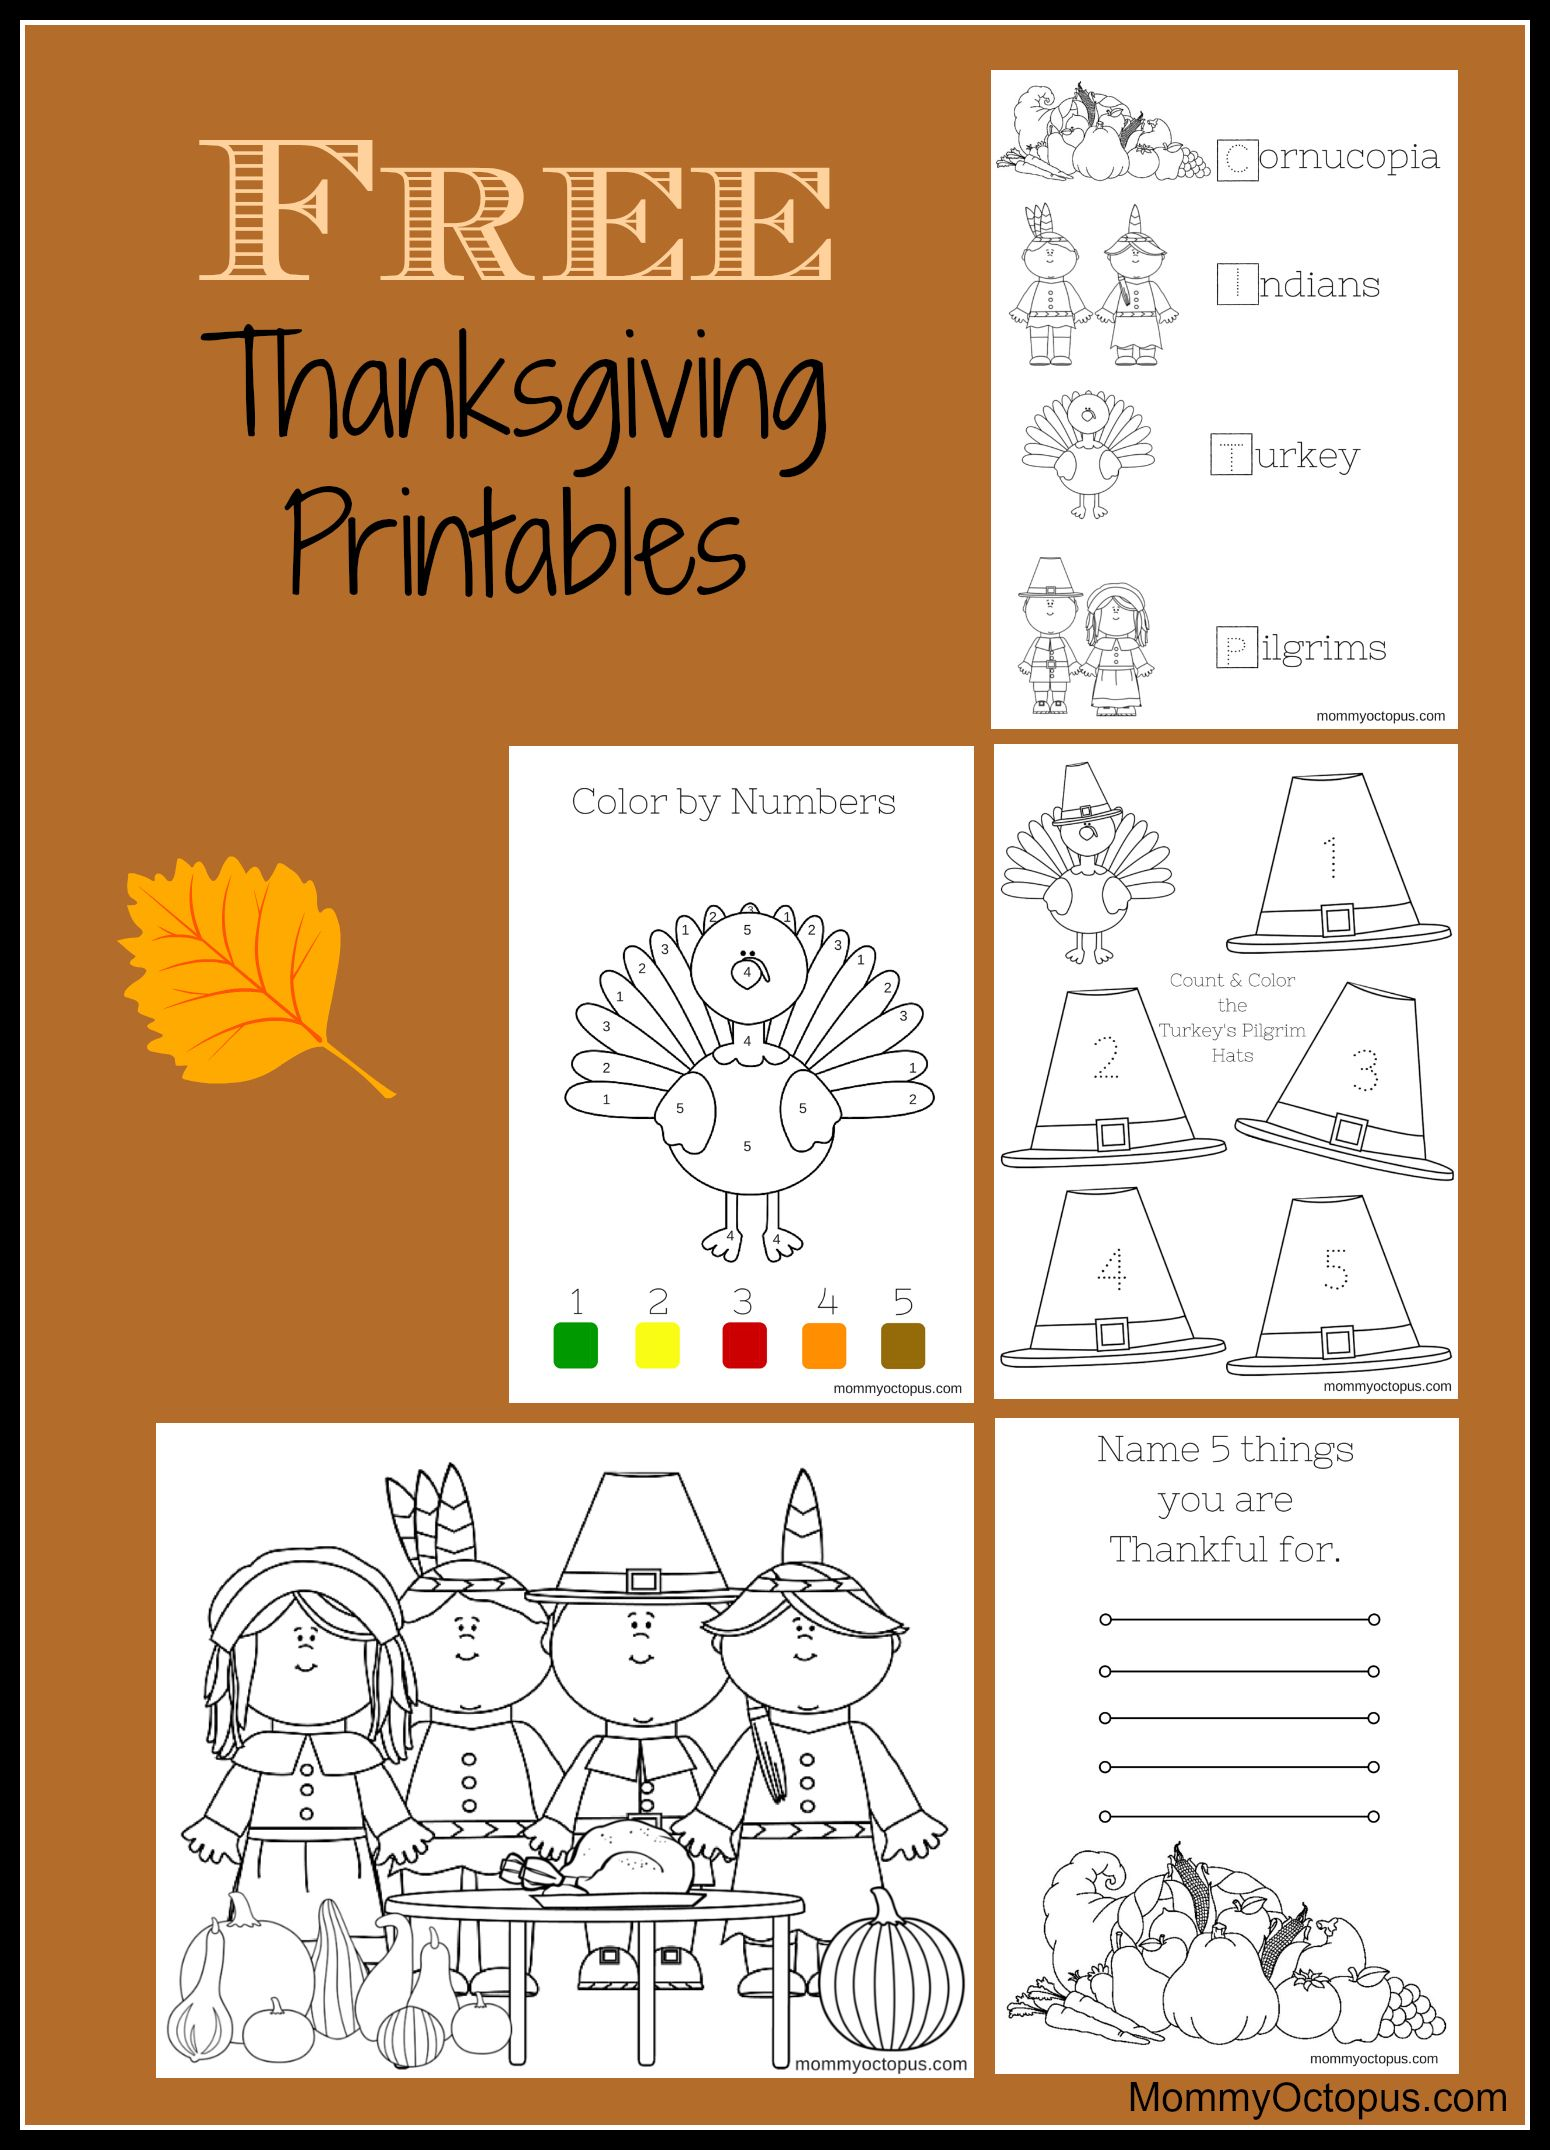 Thanksgiving Activity Free Printable Thanksgiving Activity Sheets For Kids